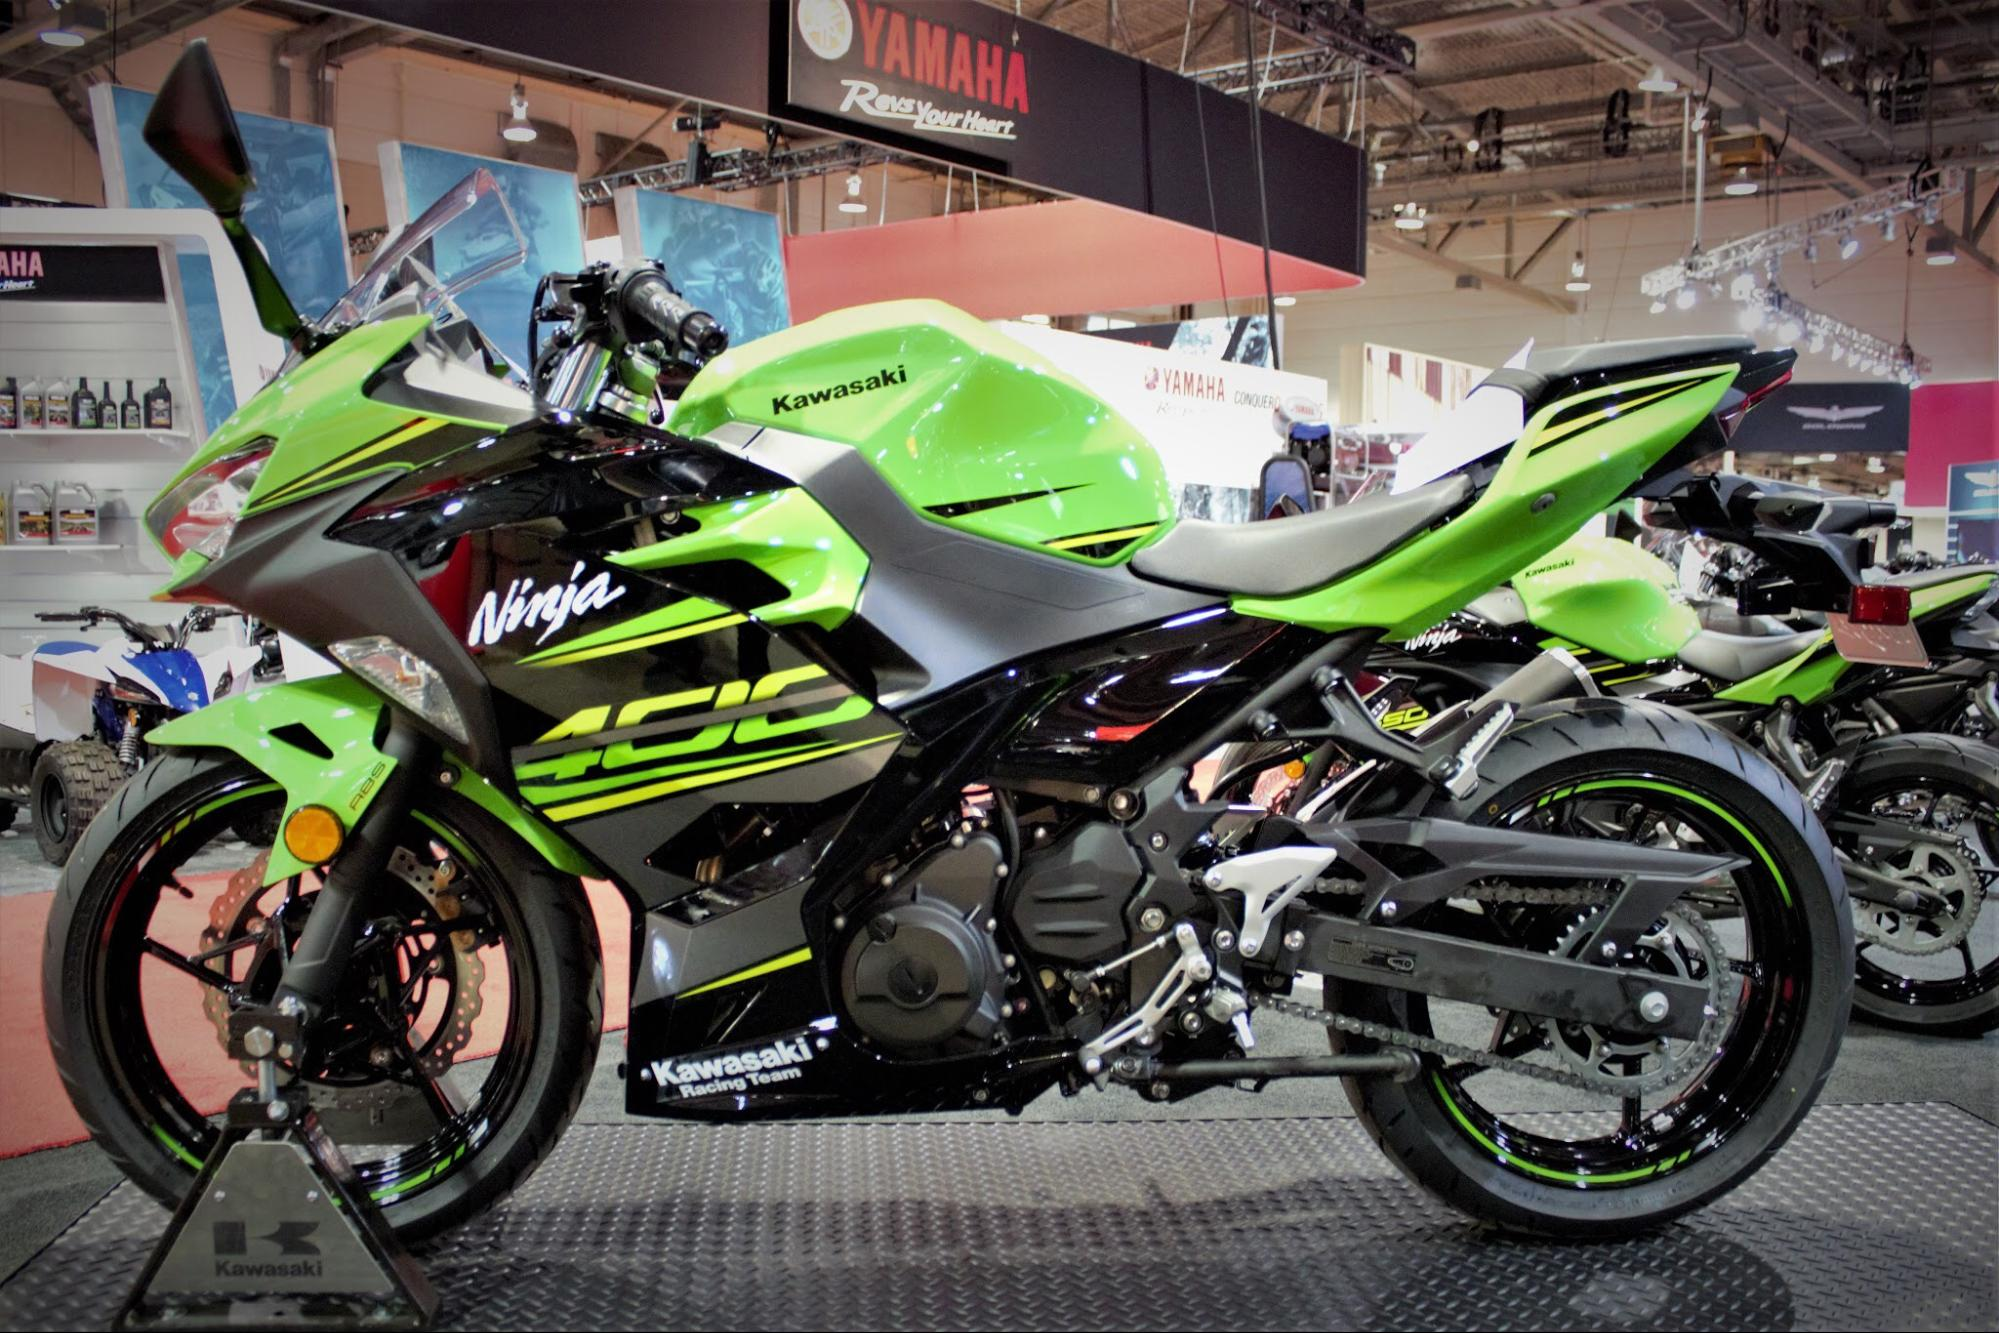 Choosing The Best Motorbike For Your Amazing Road Trips in India